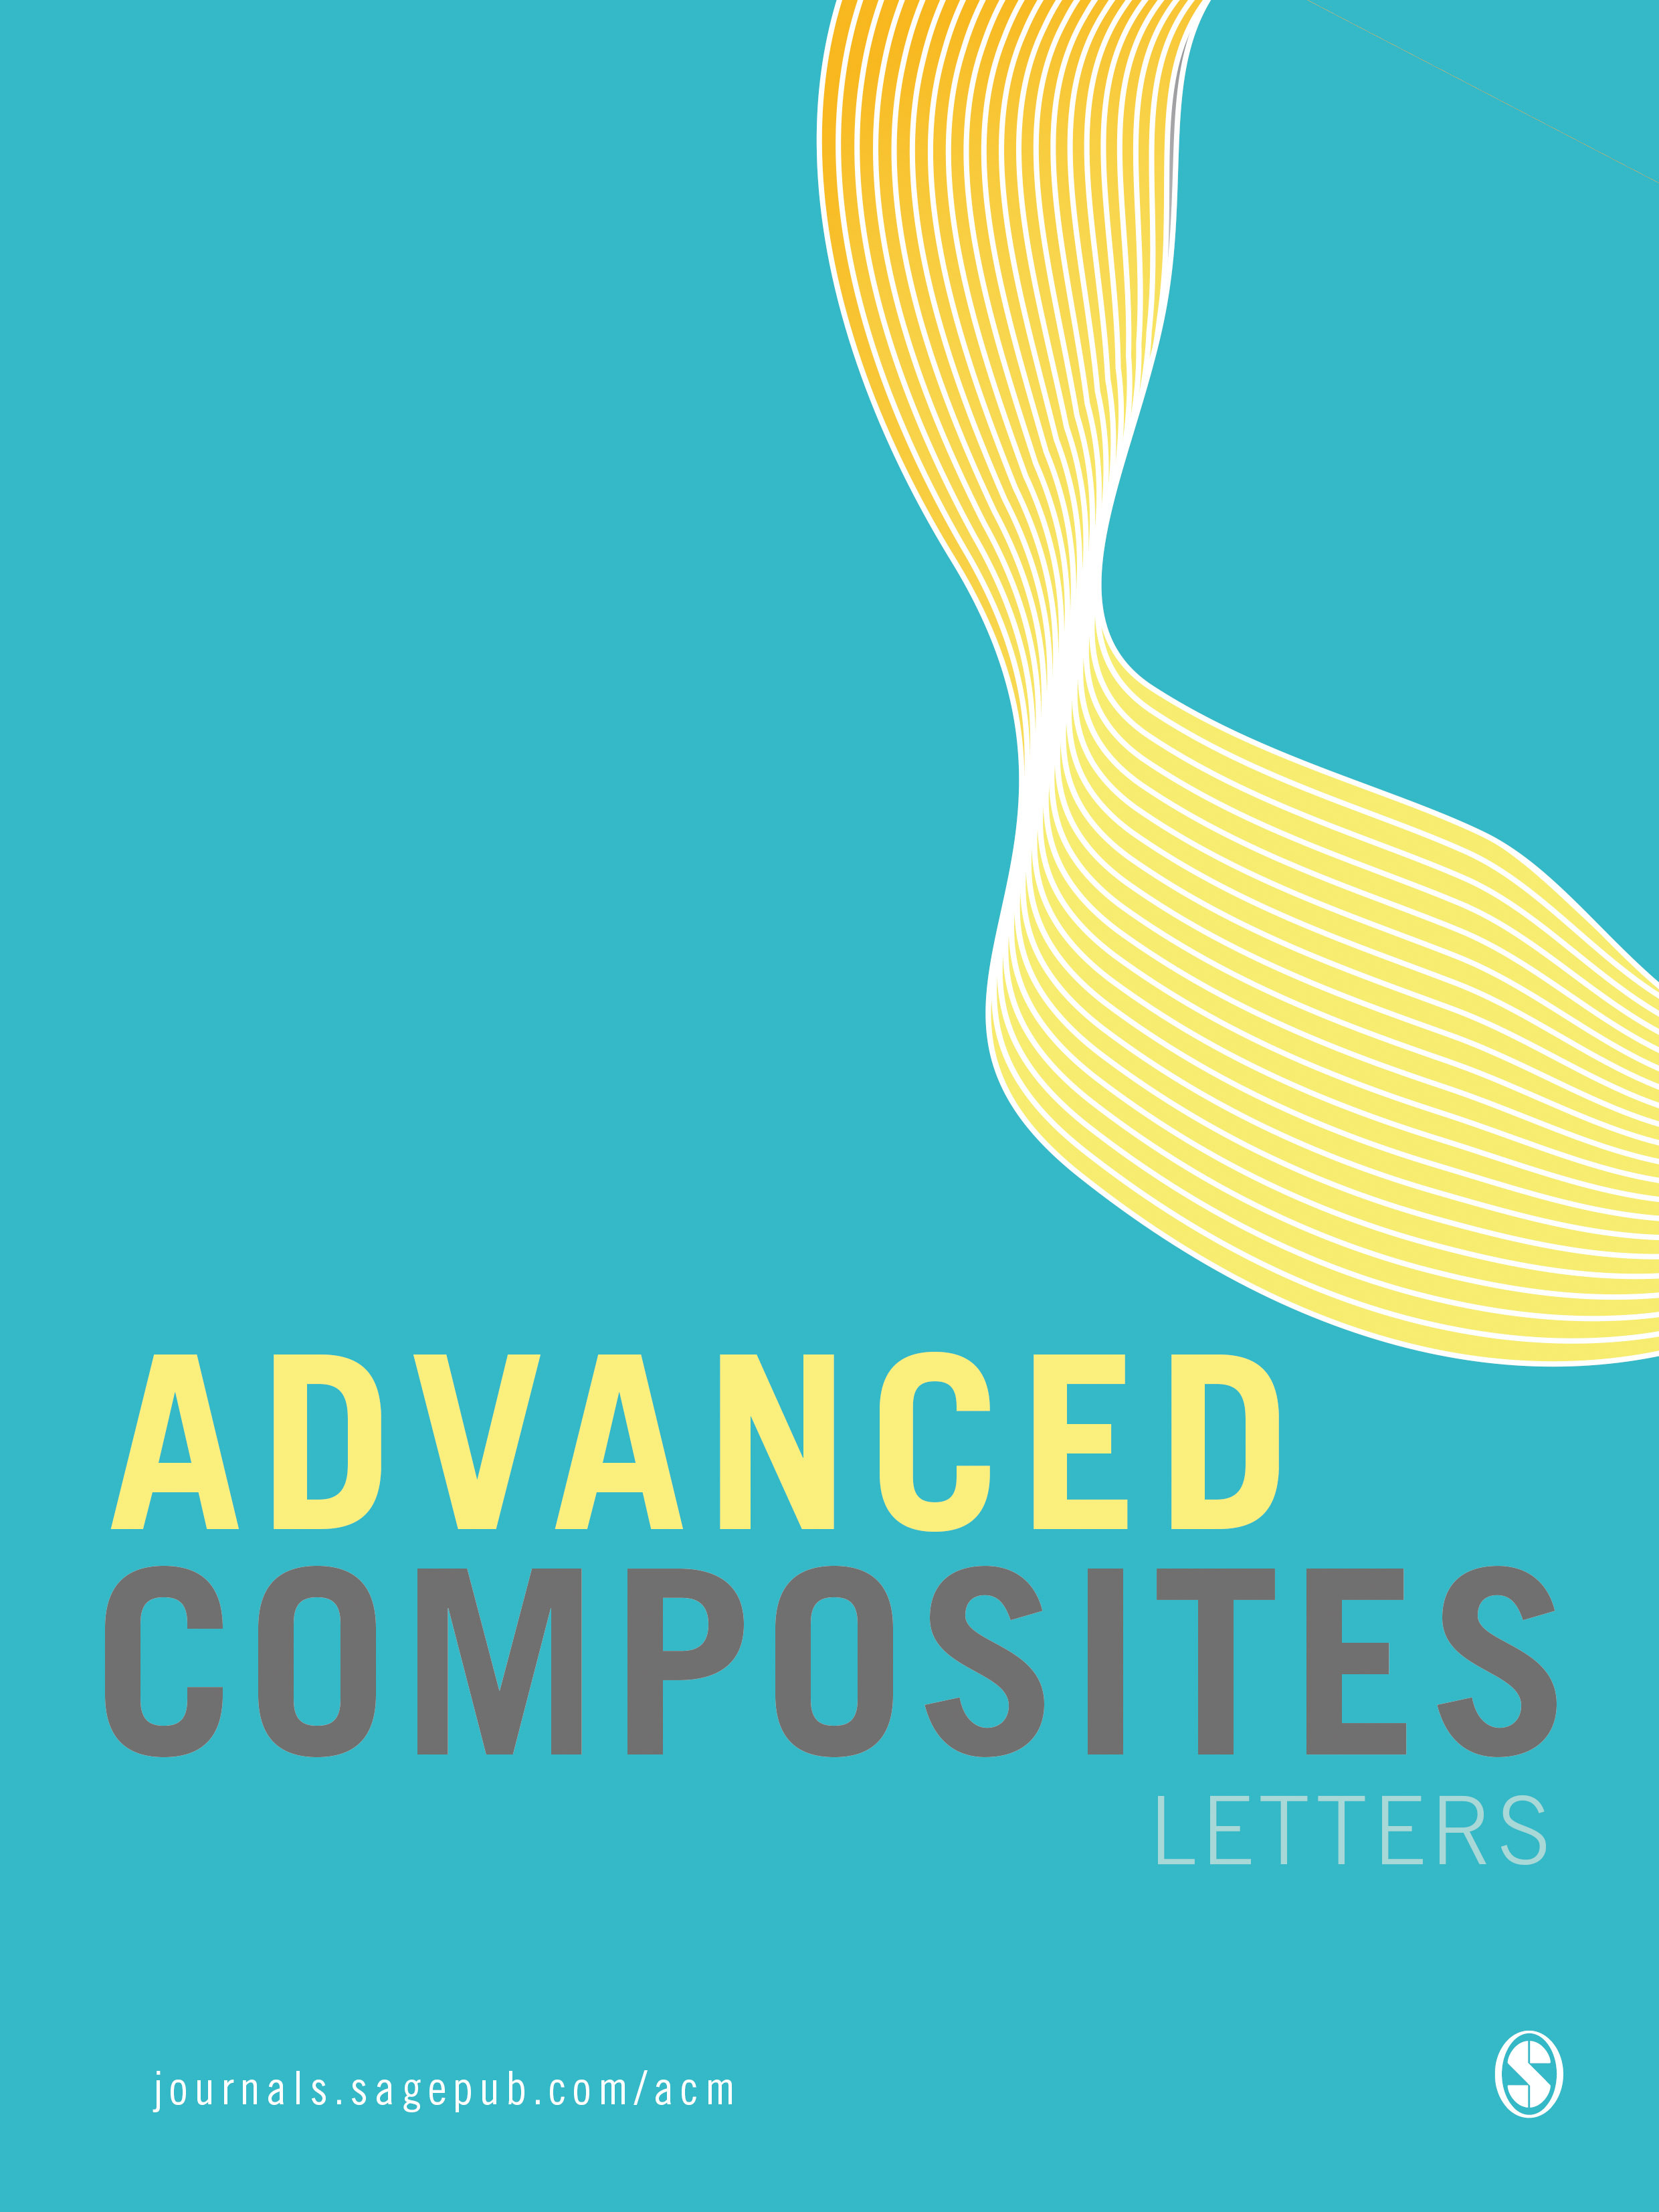 Advanced Composites Letters journal cover